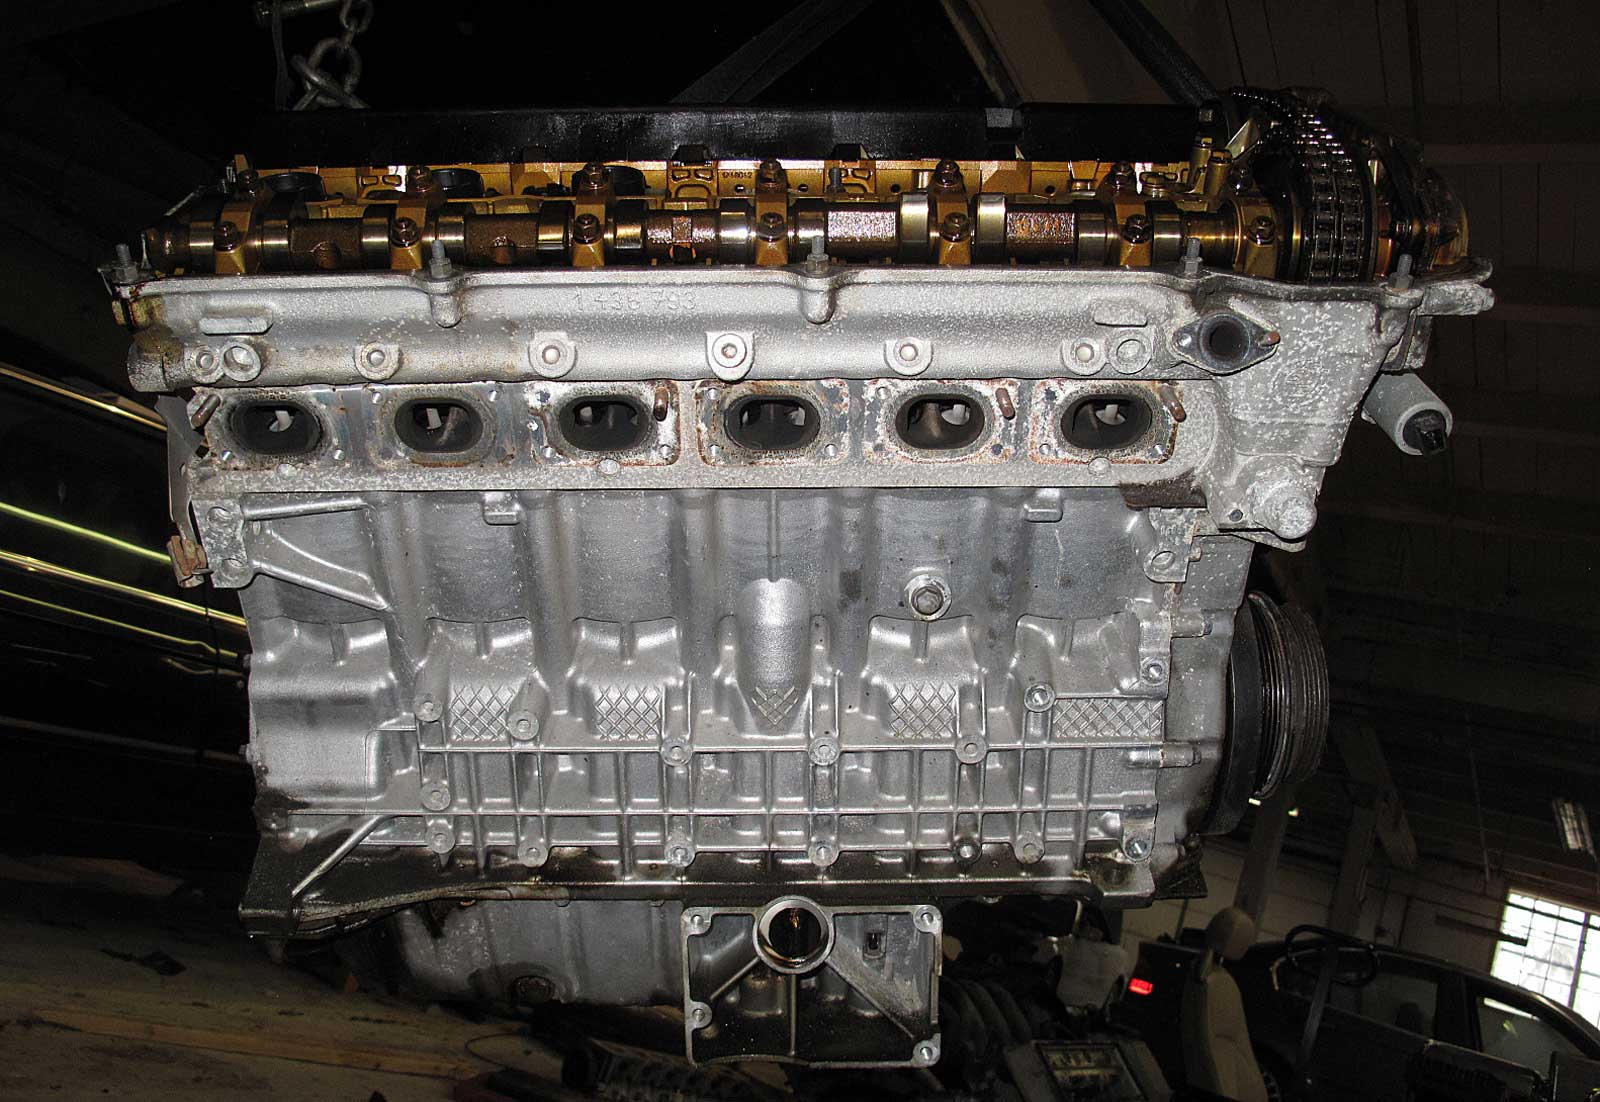 volkswagen jetta 2 5 engine diagram bmw e46 325xi x3 2.5l m54 6-cylinder longblock engine ... bmw 325xi 2 5 engine diagram